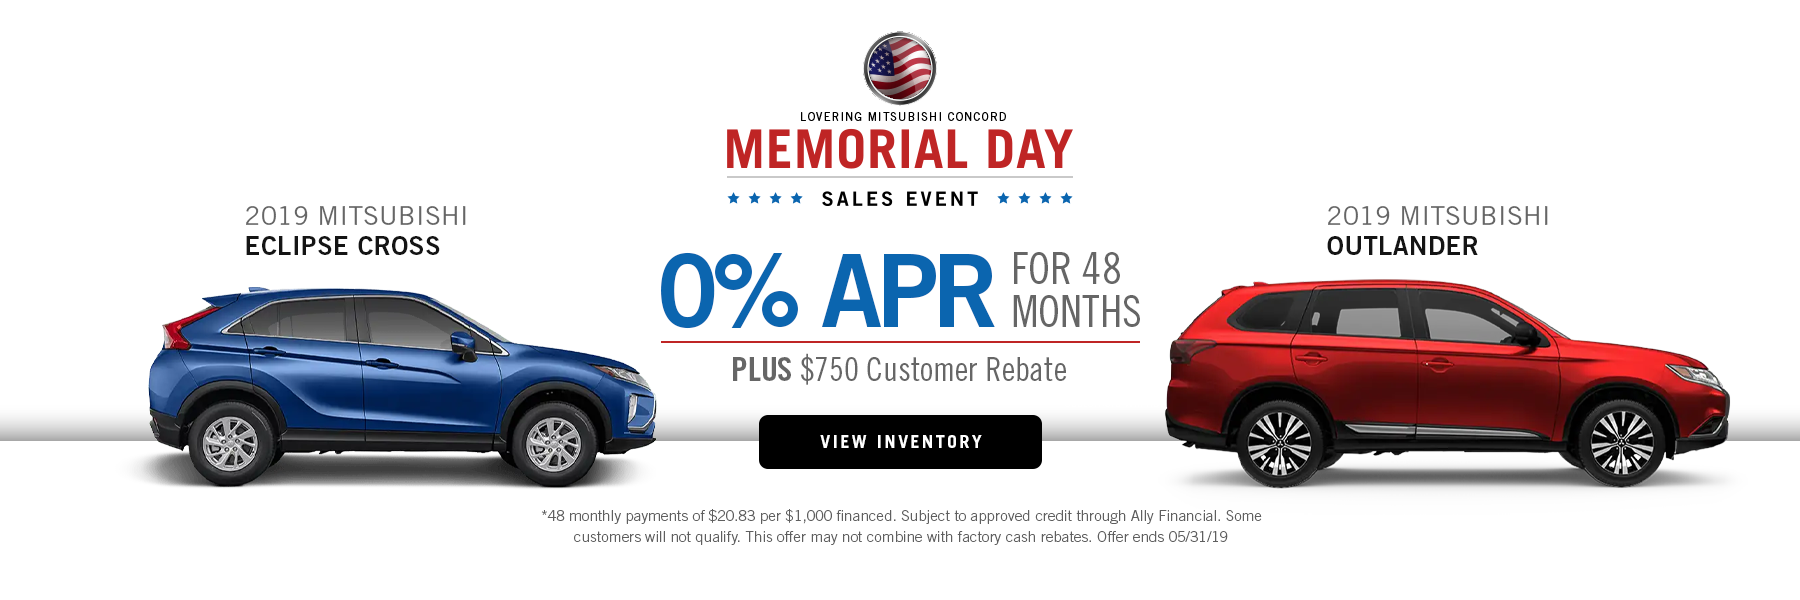 Memorial Day Sales Event 0%